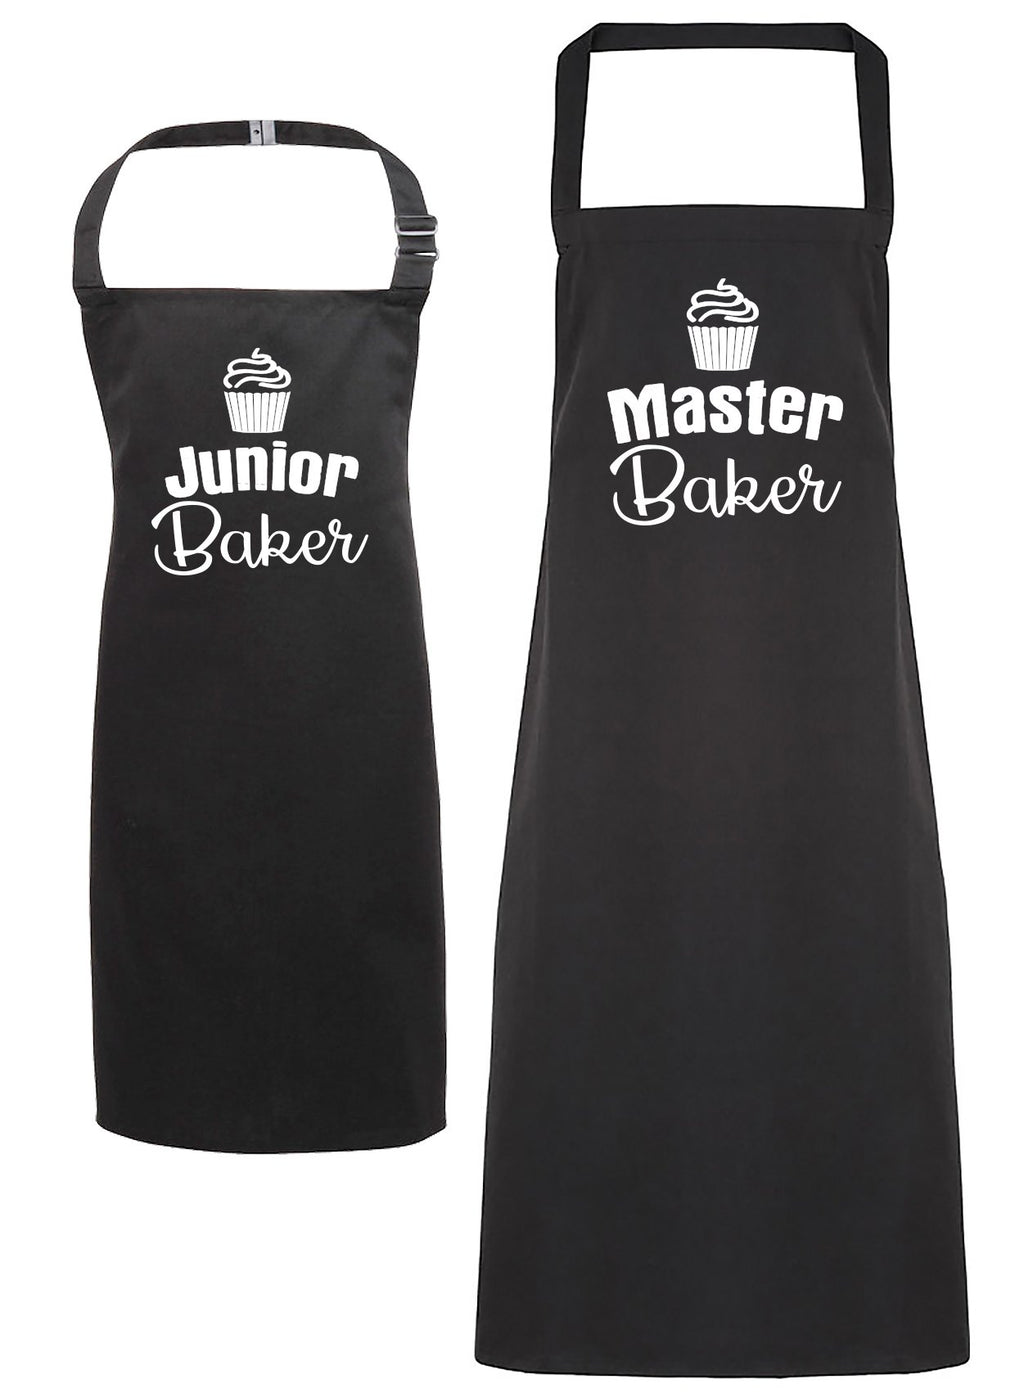 Master Baker & Junior Baker - Adult & Kids Apron Set